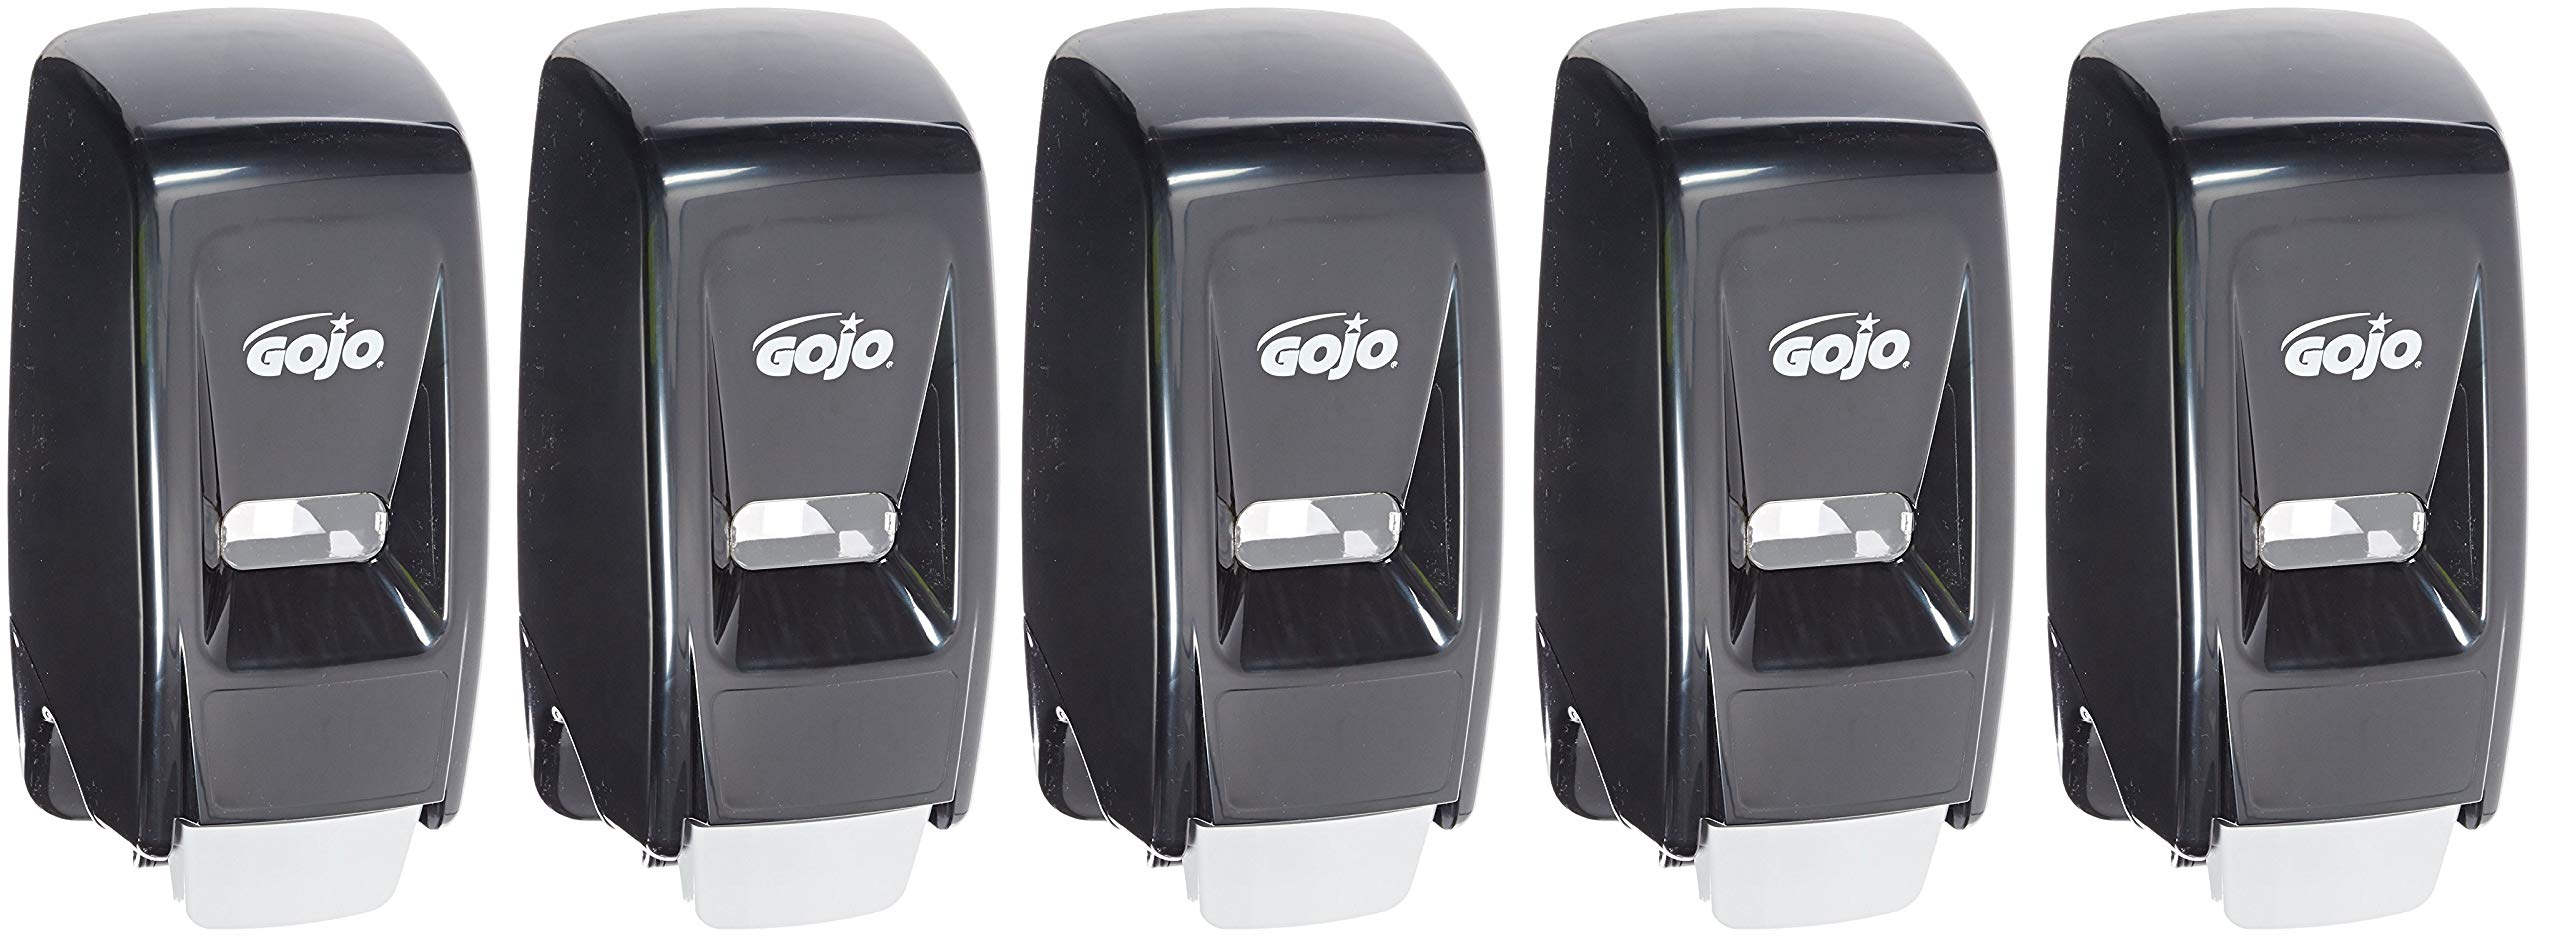 Gojo 800 Series Bag-in-Box Lotion Soap Push-Style Dispenser, Black, Dispenser 800 mL Lotion Soap Refills - 9033-12 (5 Pack)